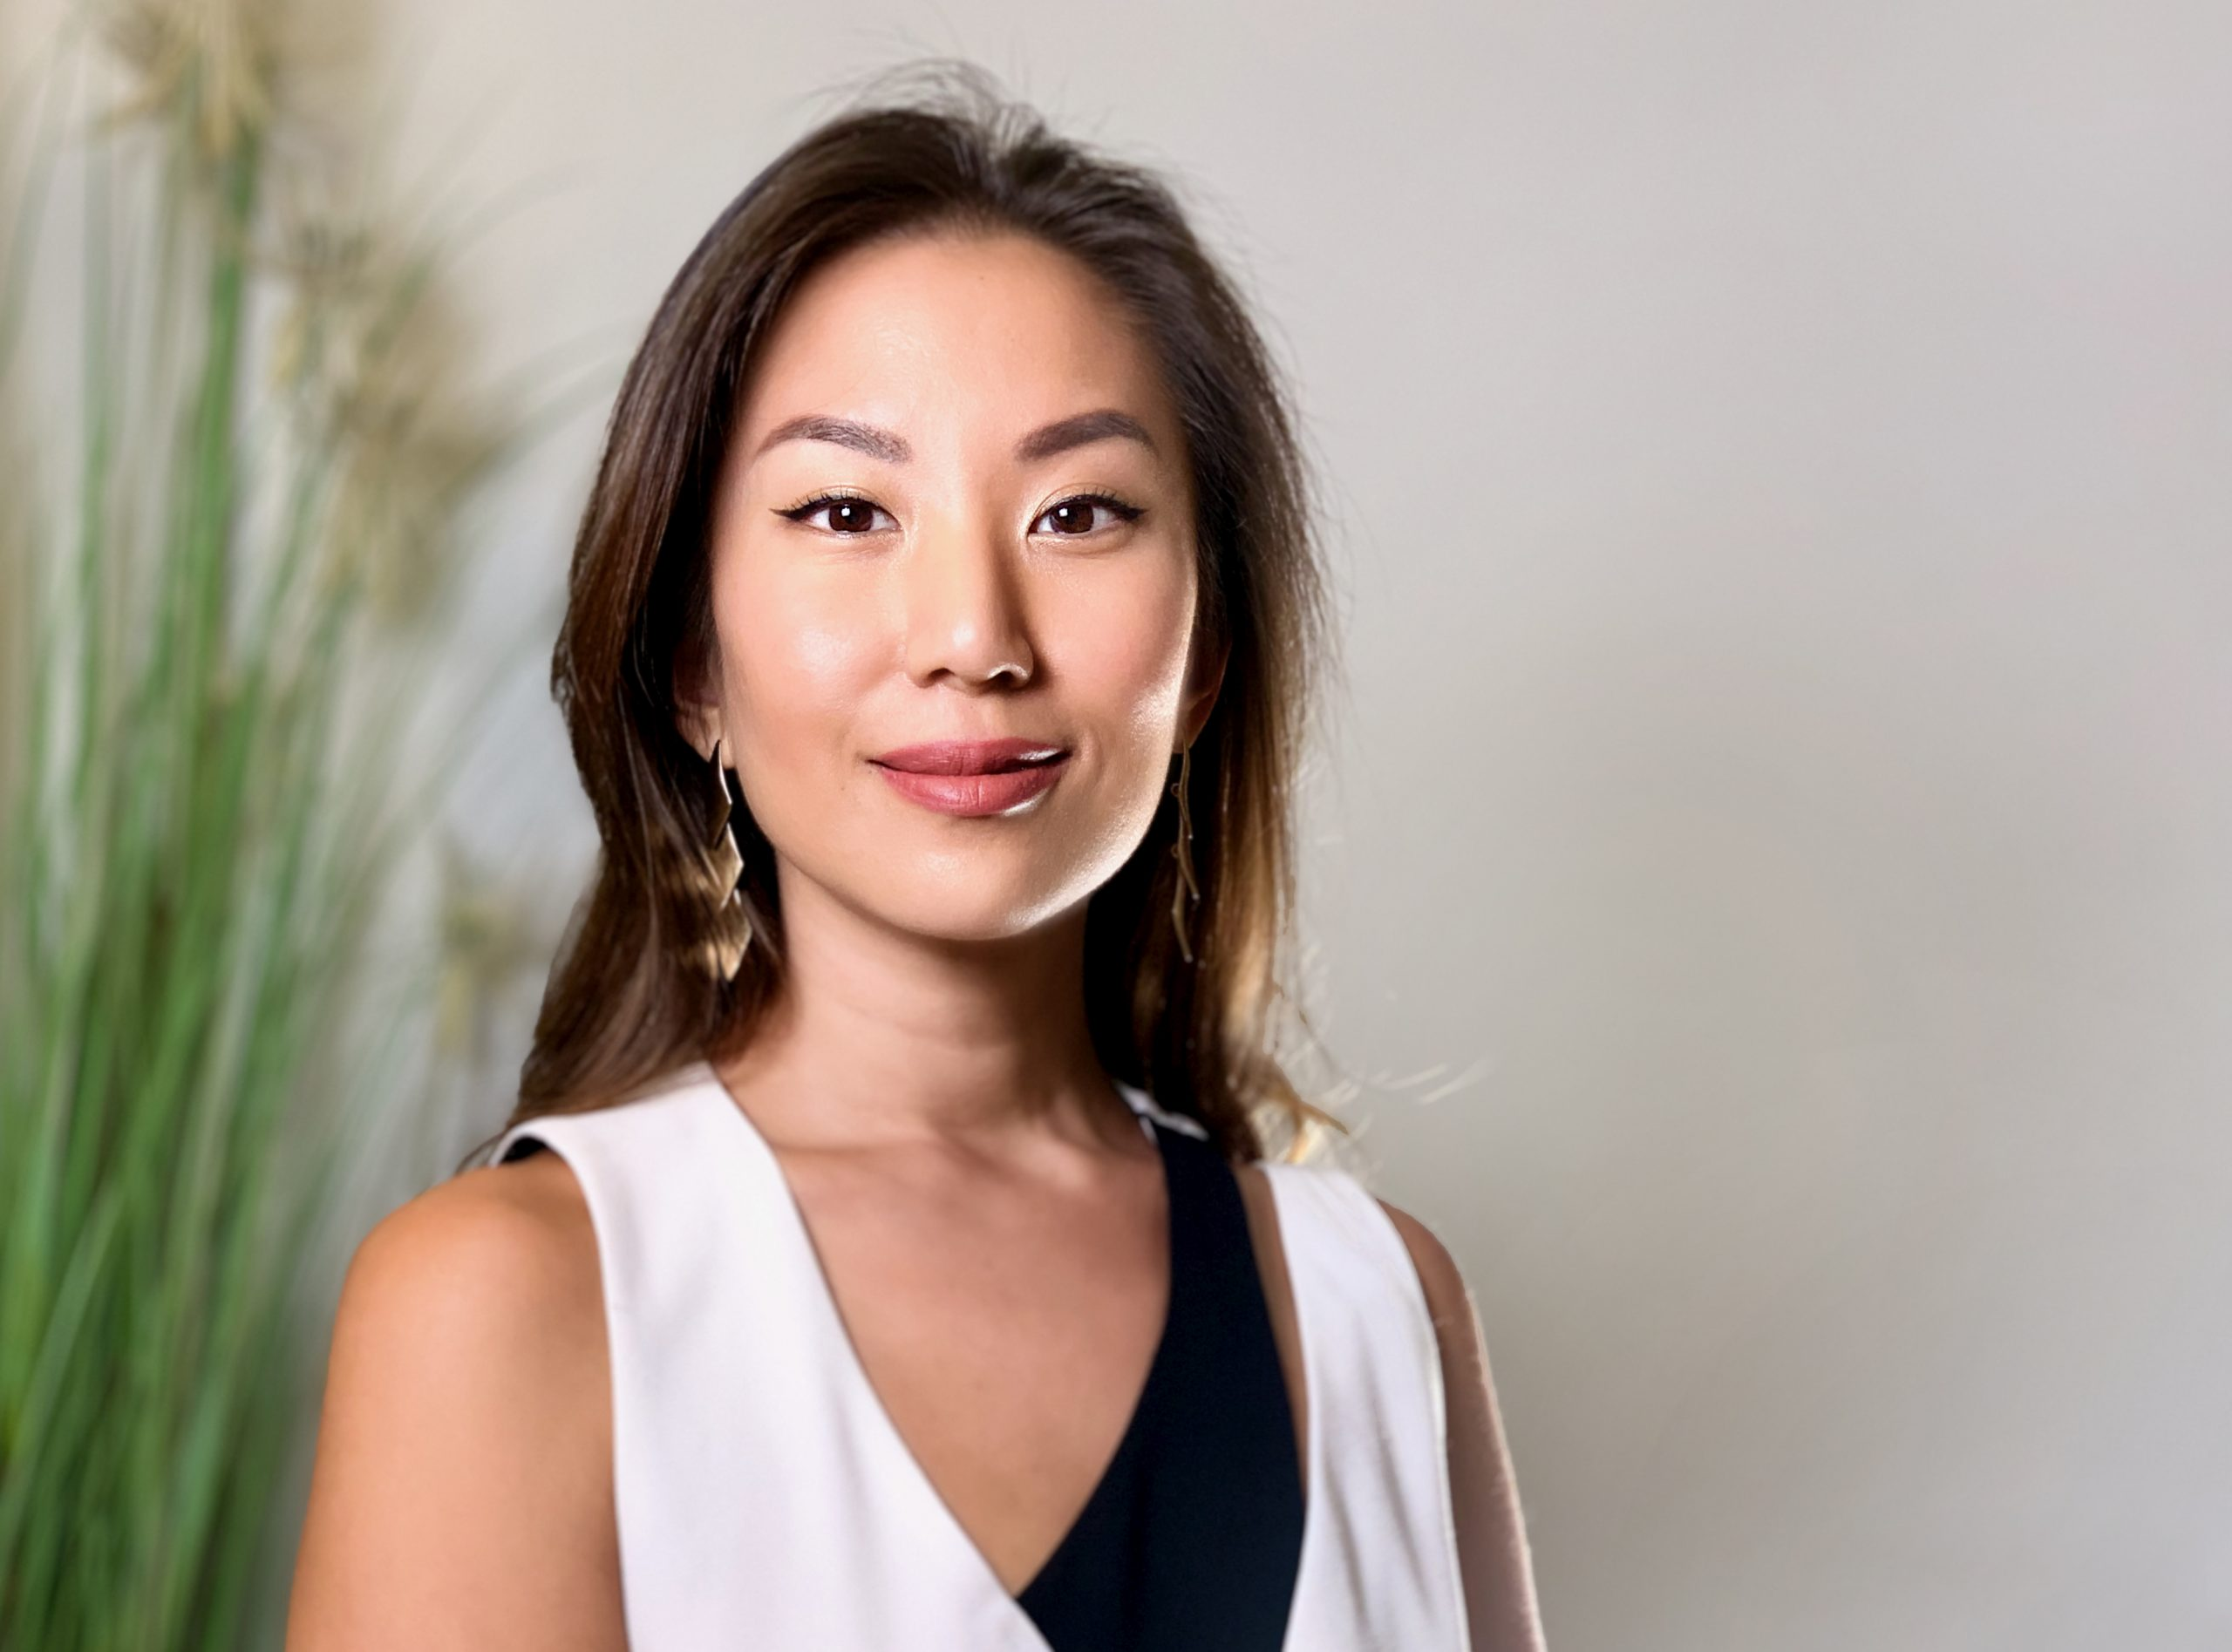 Asia Tech Podcast – Episode 73 – Krystal Choo – Thrive Hour & Neo Sapio – Growth Always Involves Some Level of Struggle and Pain